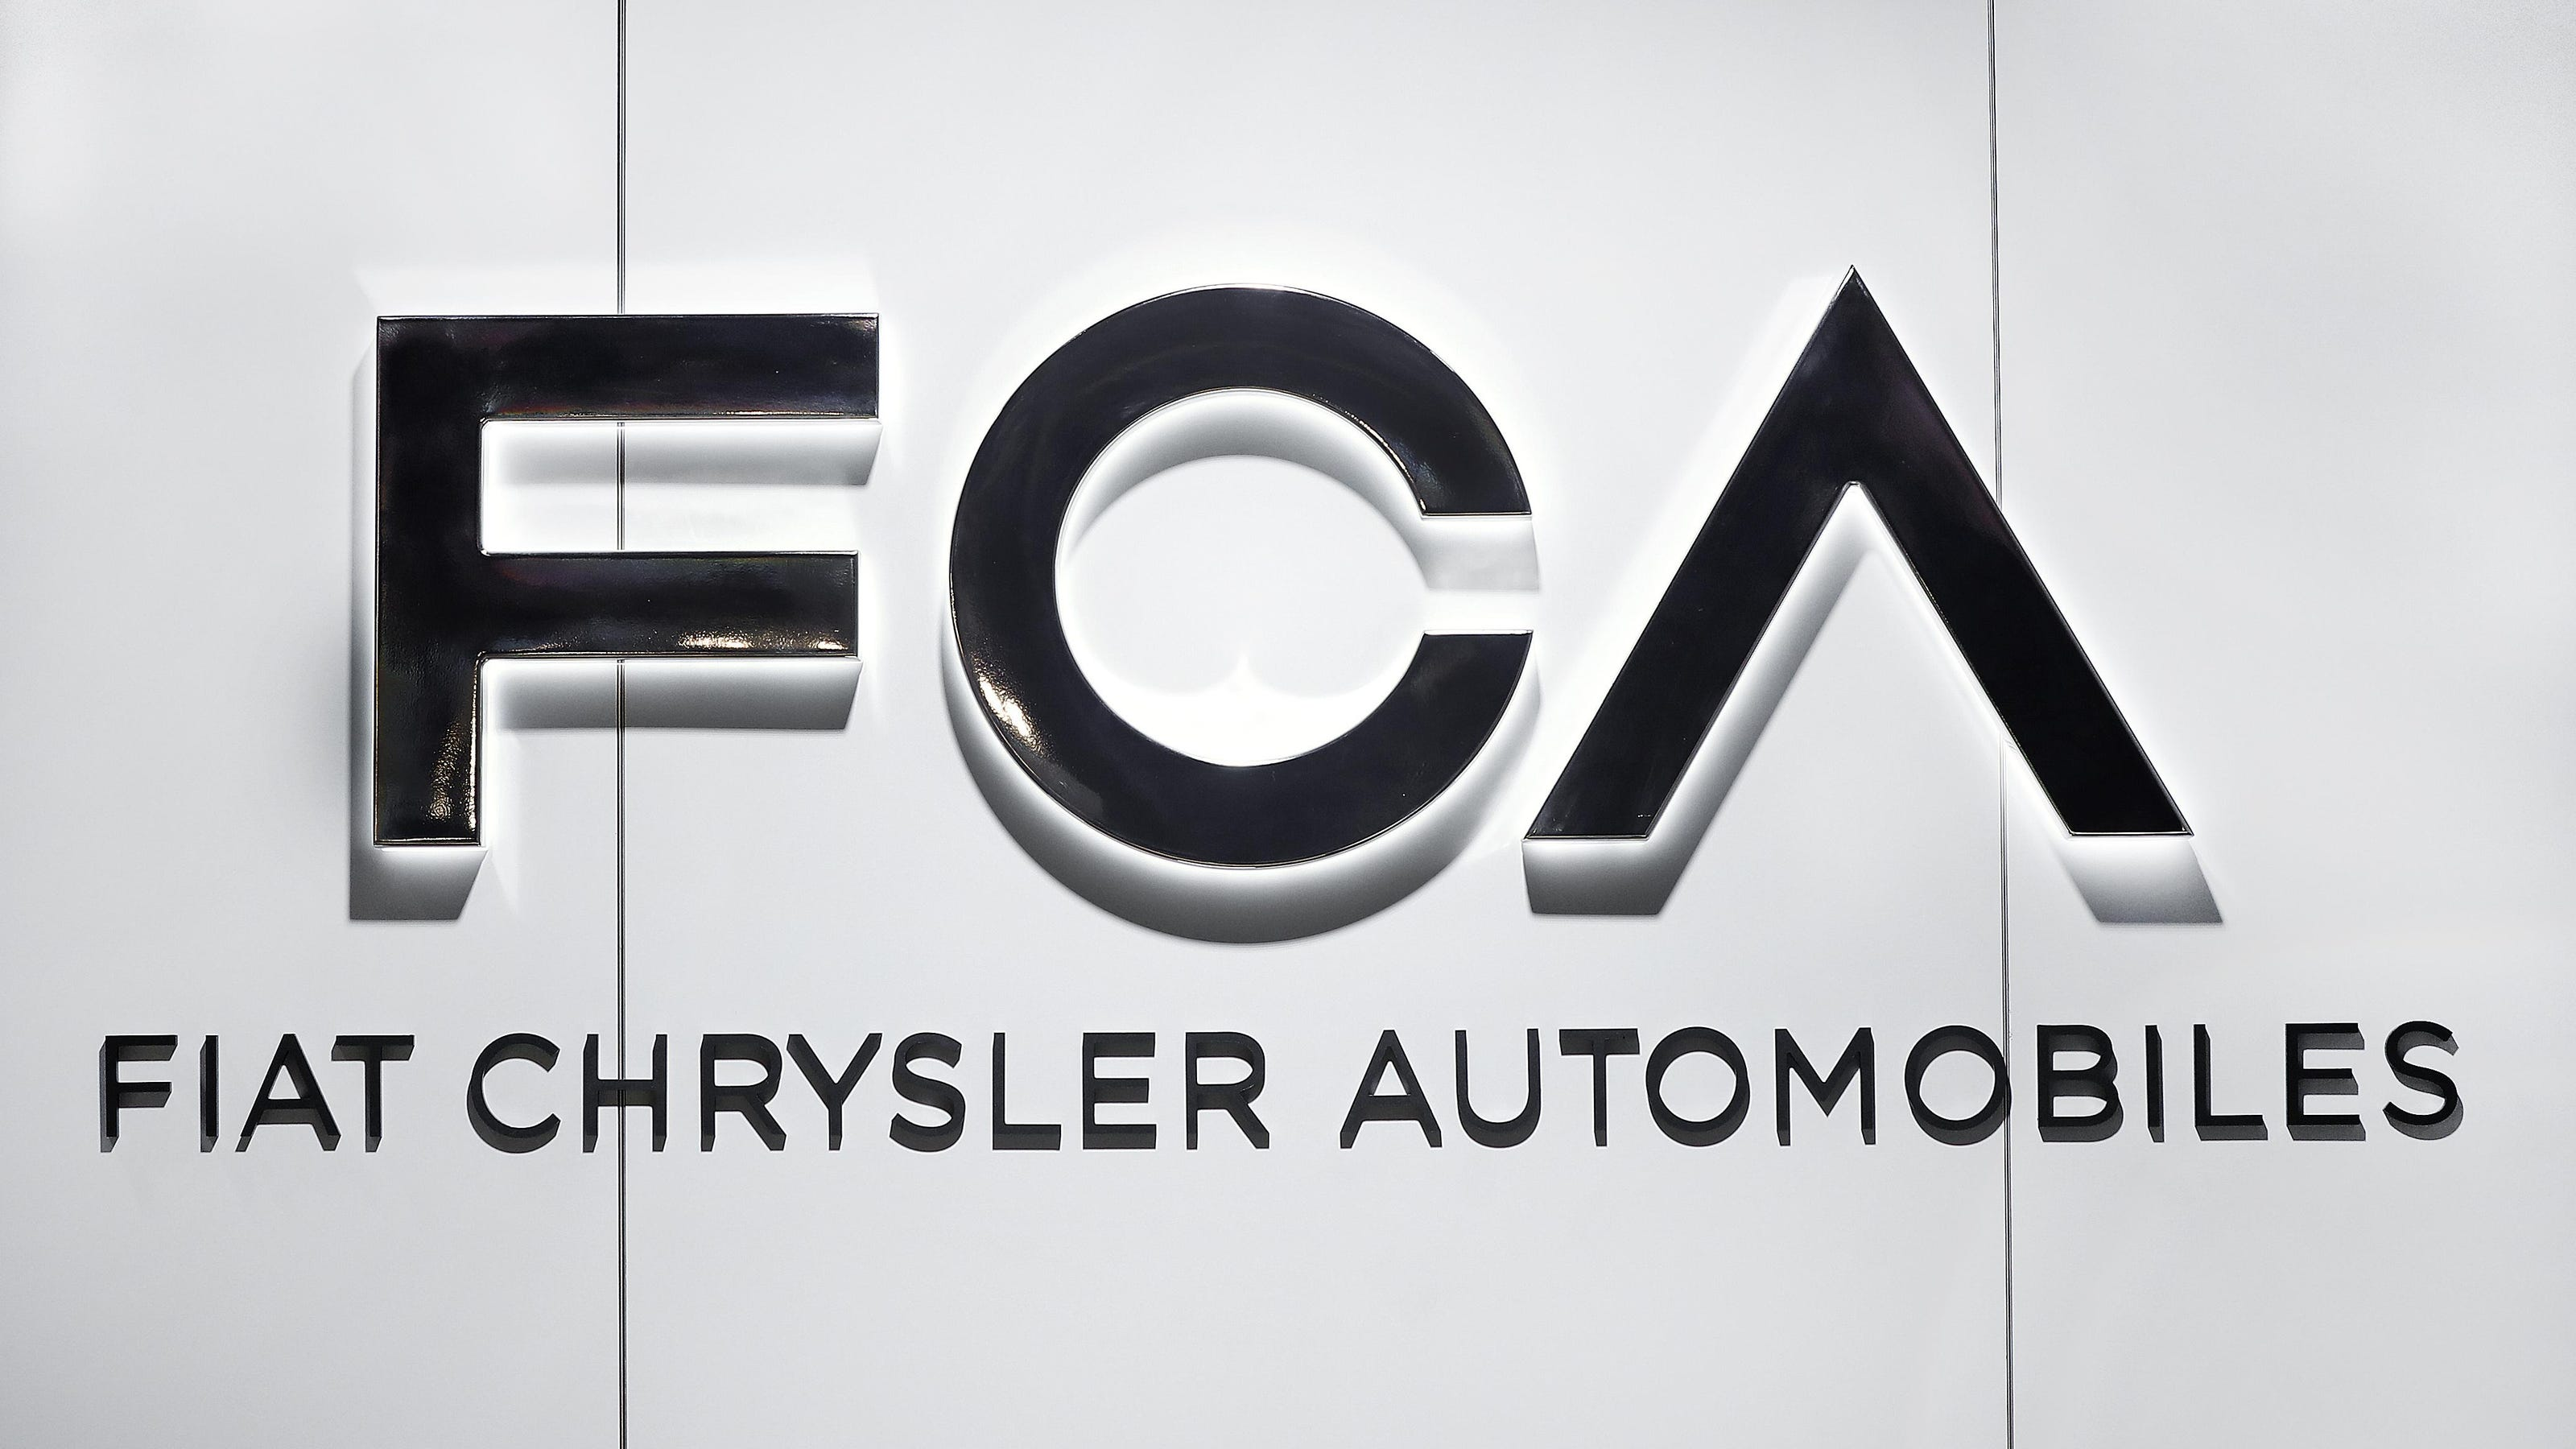 Fiat Chrysler plans $1.1B inaugural dividend payout